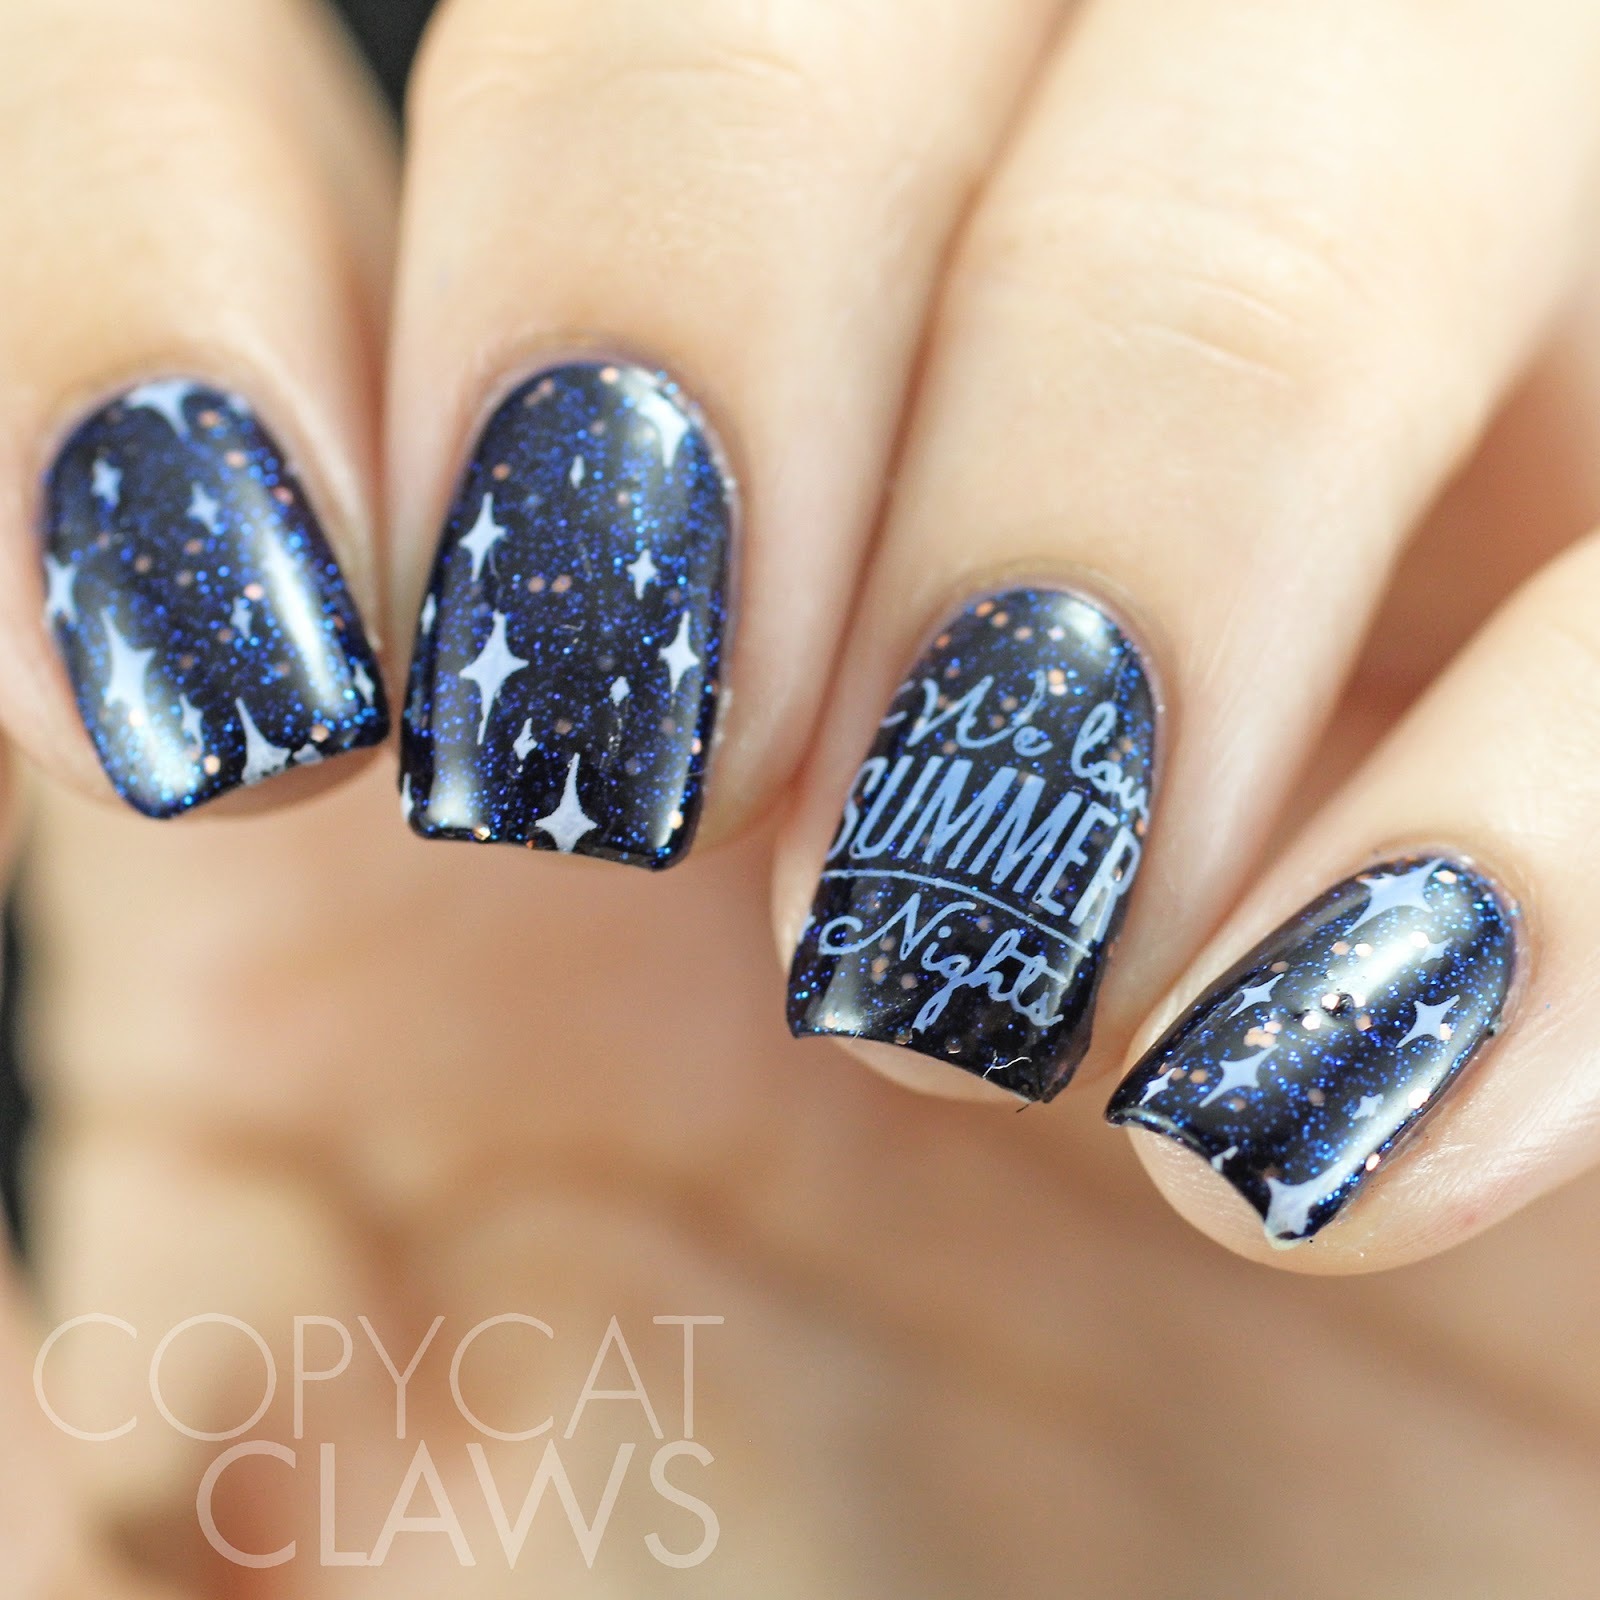 Copycat Claws Blue Color Block Nail Art: Copycat Claws: HPB Presents Summer Night Sky Nail Art